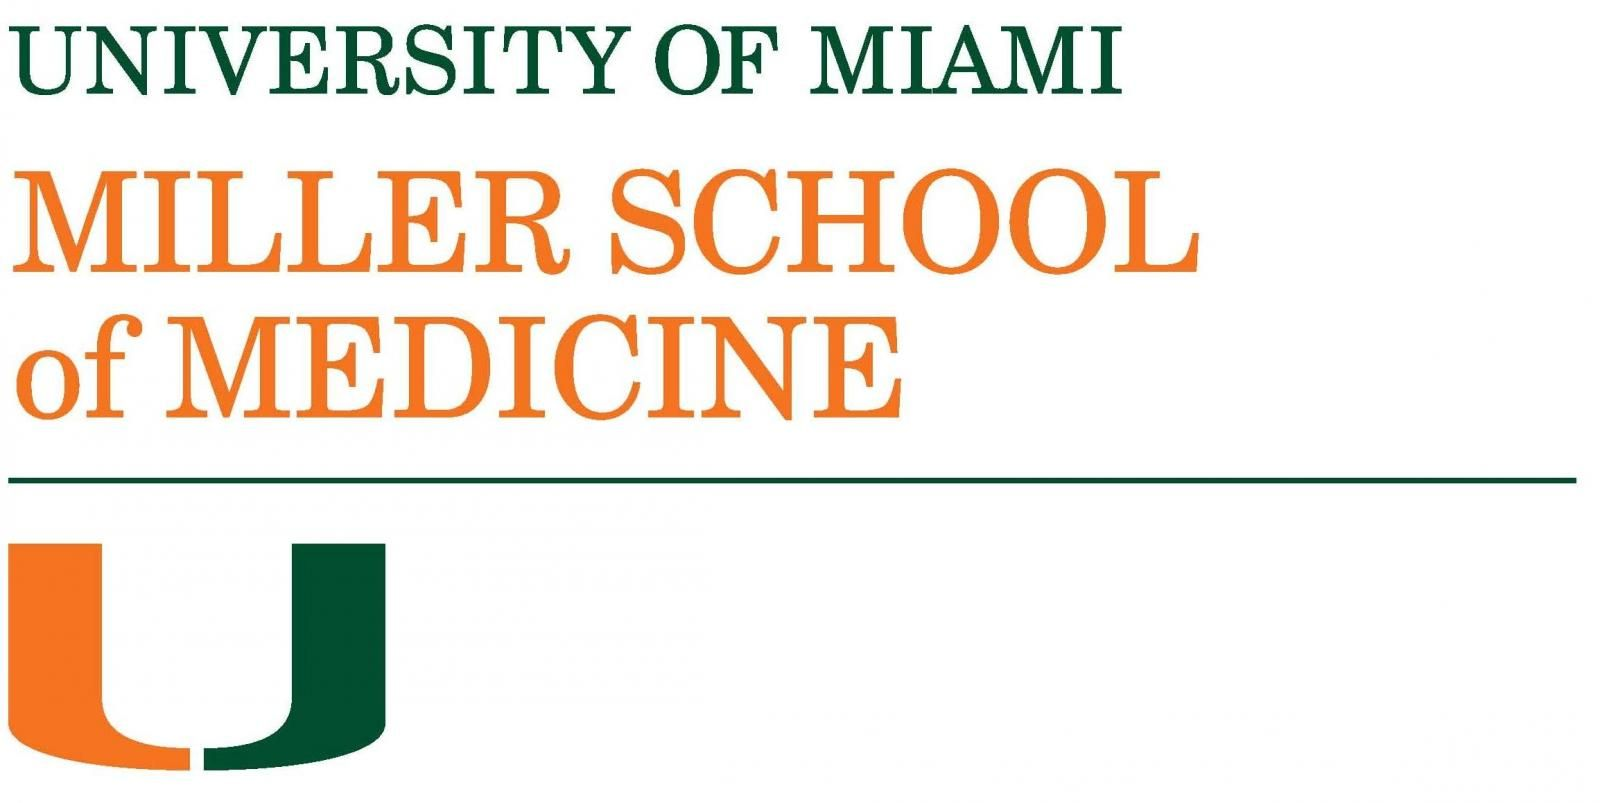 University of Miami-Miller School of Medicine logo